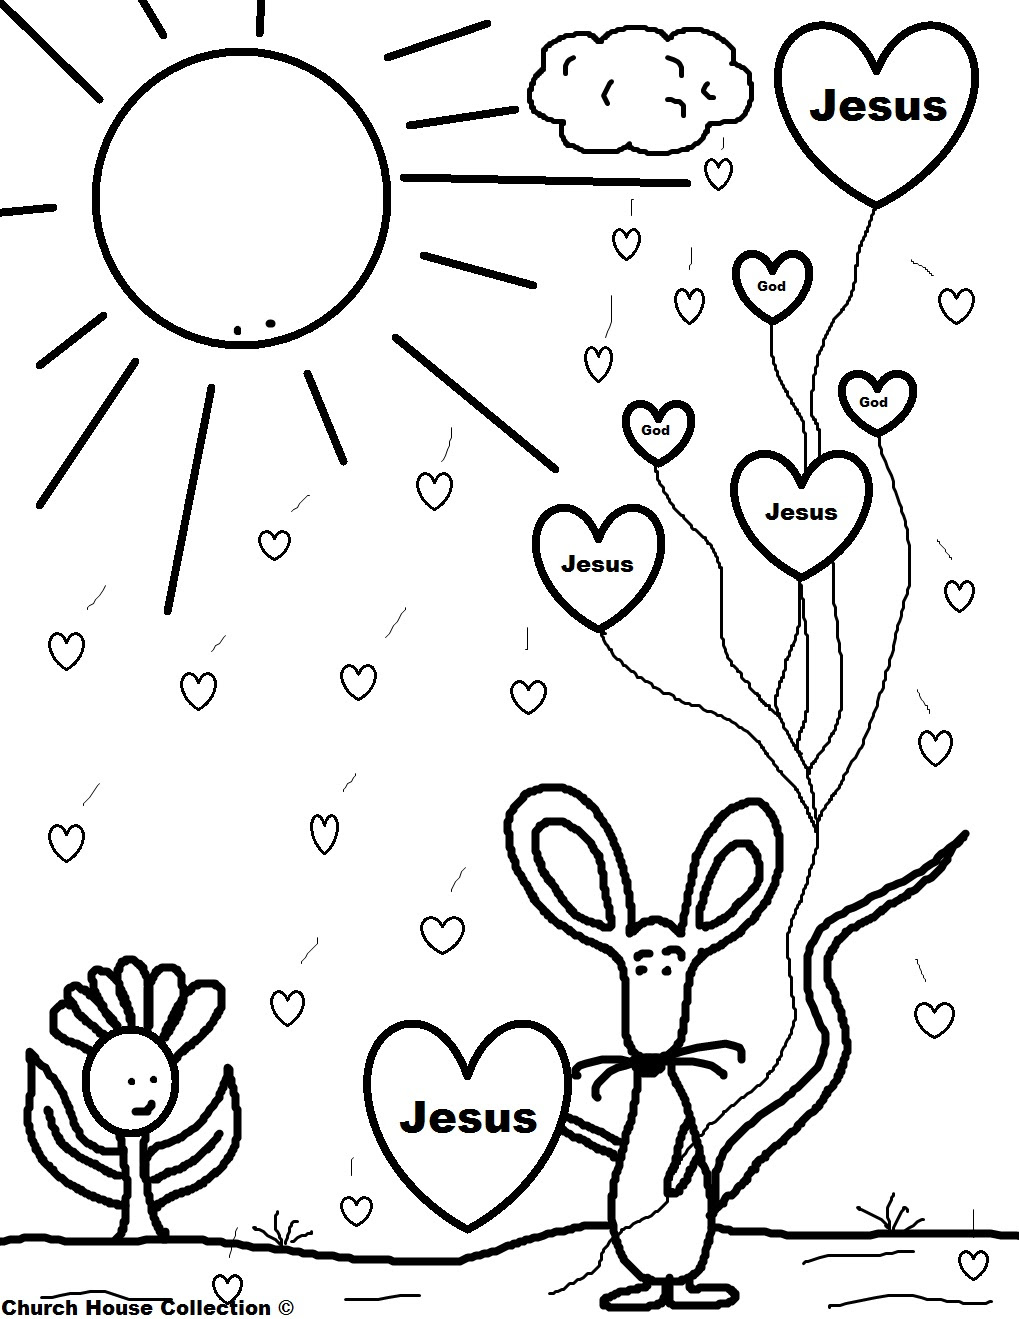 940 Top Christian Childrens Coloring Pages Free  Images